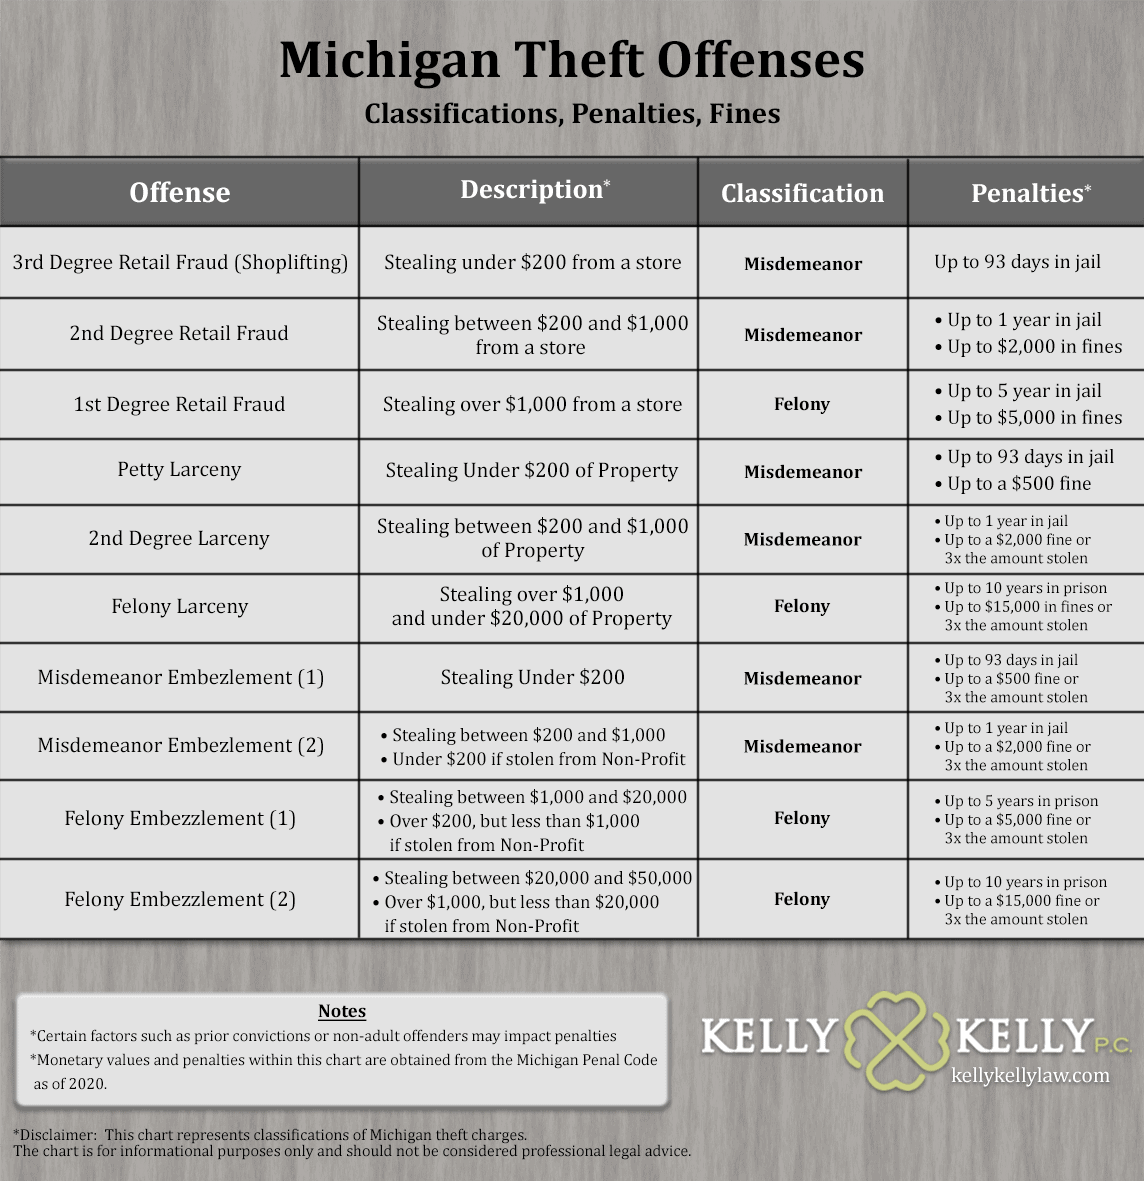 A chart showing the various degrees of theft, larceny, and embezlement classifications, charges, and penalties in Michigan. This ranges from misdemeanors punishable by up to 93 days in jail to felonies punishable by up to 10 years in prison depending on the charge